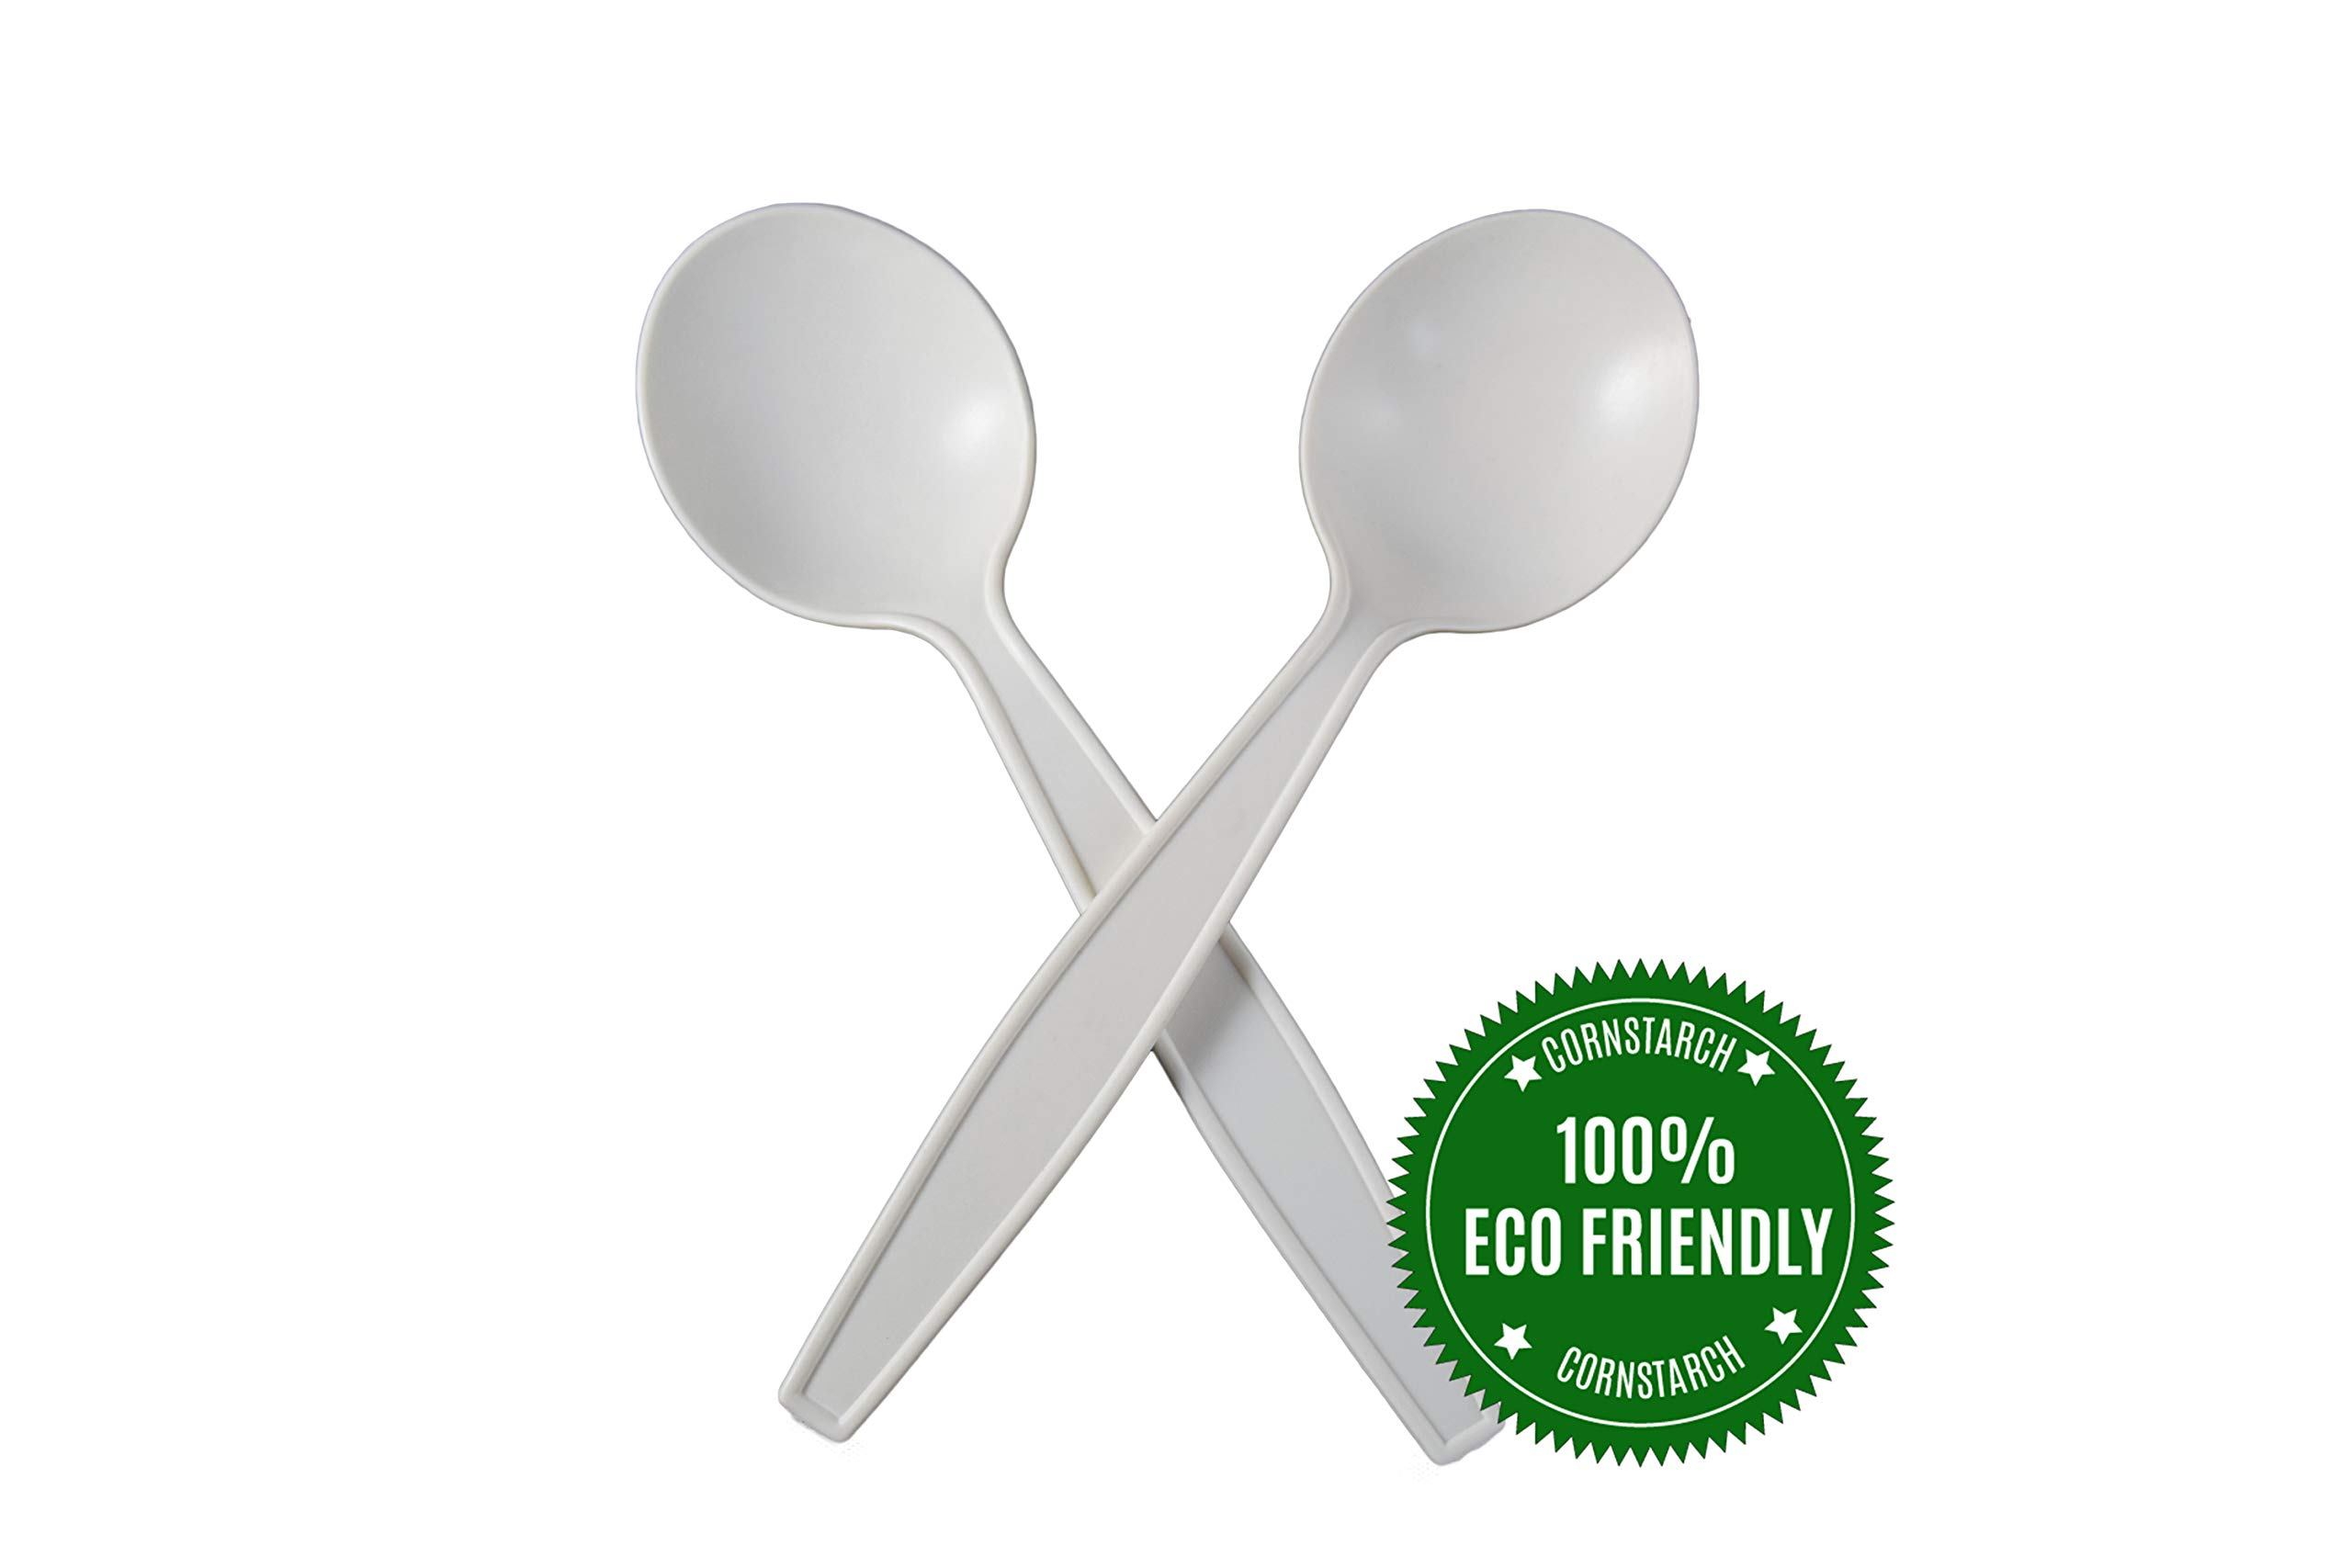 HeloGreen Eco-Friendly Cornstarch 6'' Disposable Soup Spoons: Heavyweight Heavy Duty Elegant Alternative To Plastic Spoons, Plasticware Utensils Cutlery for Party Supplies, Wedding - Ivory (100 Set) by HeloGreen